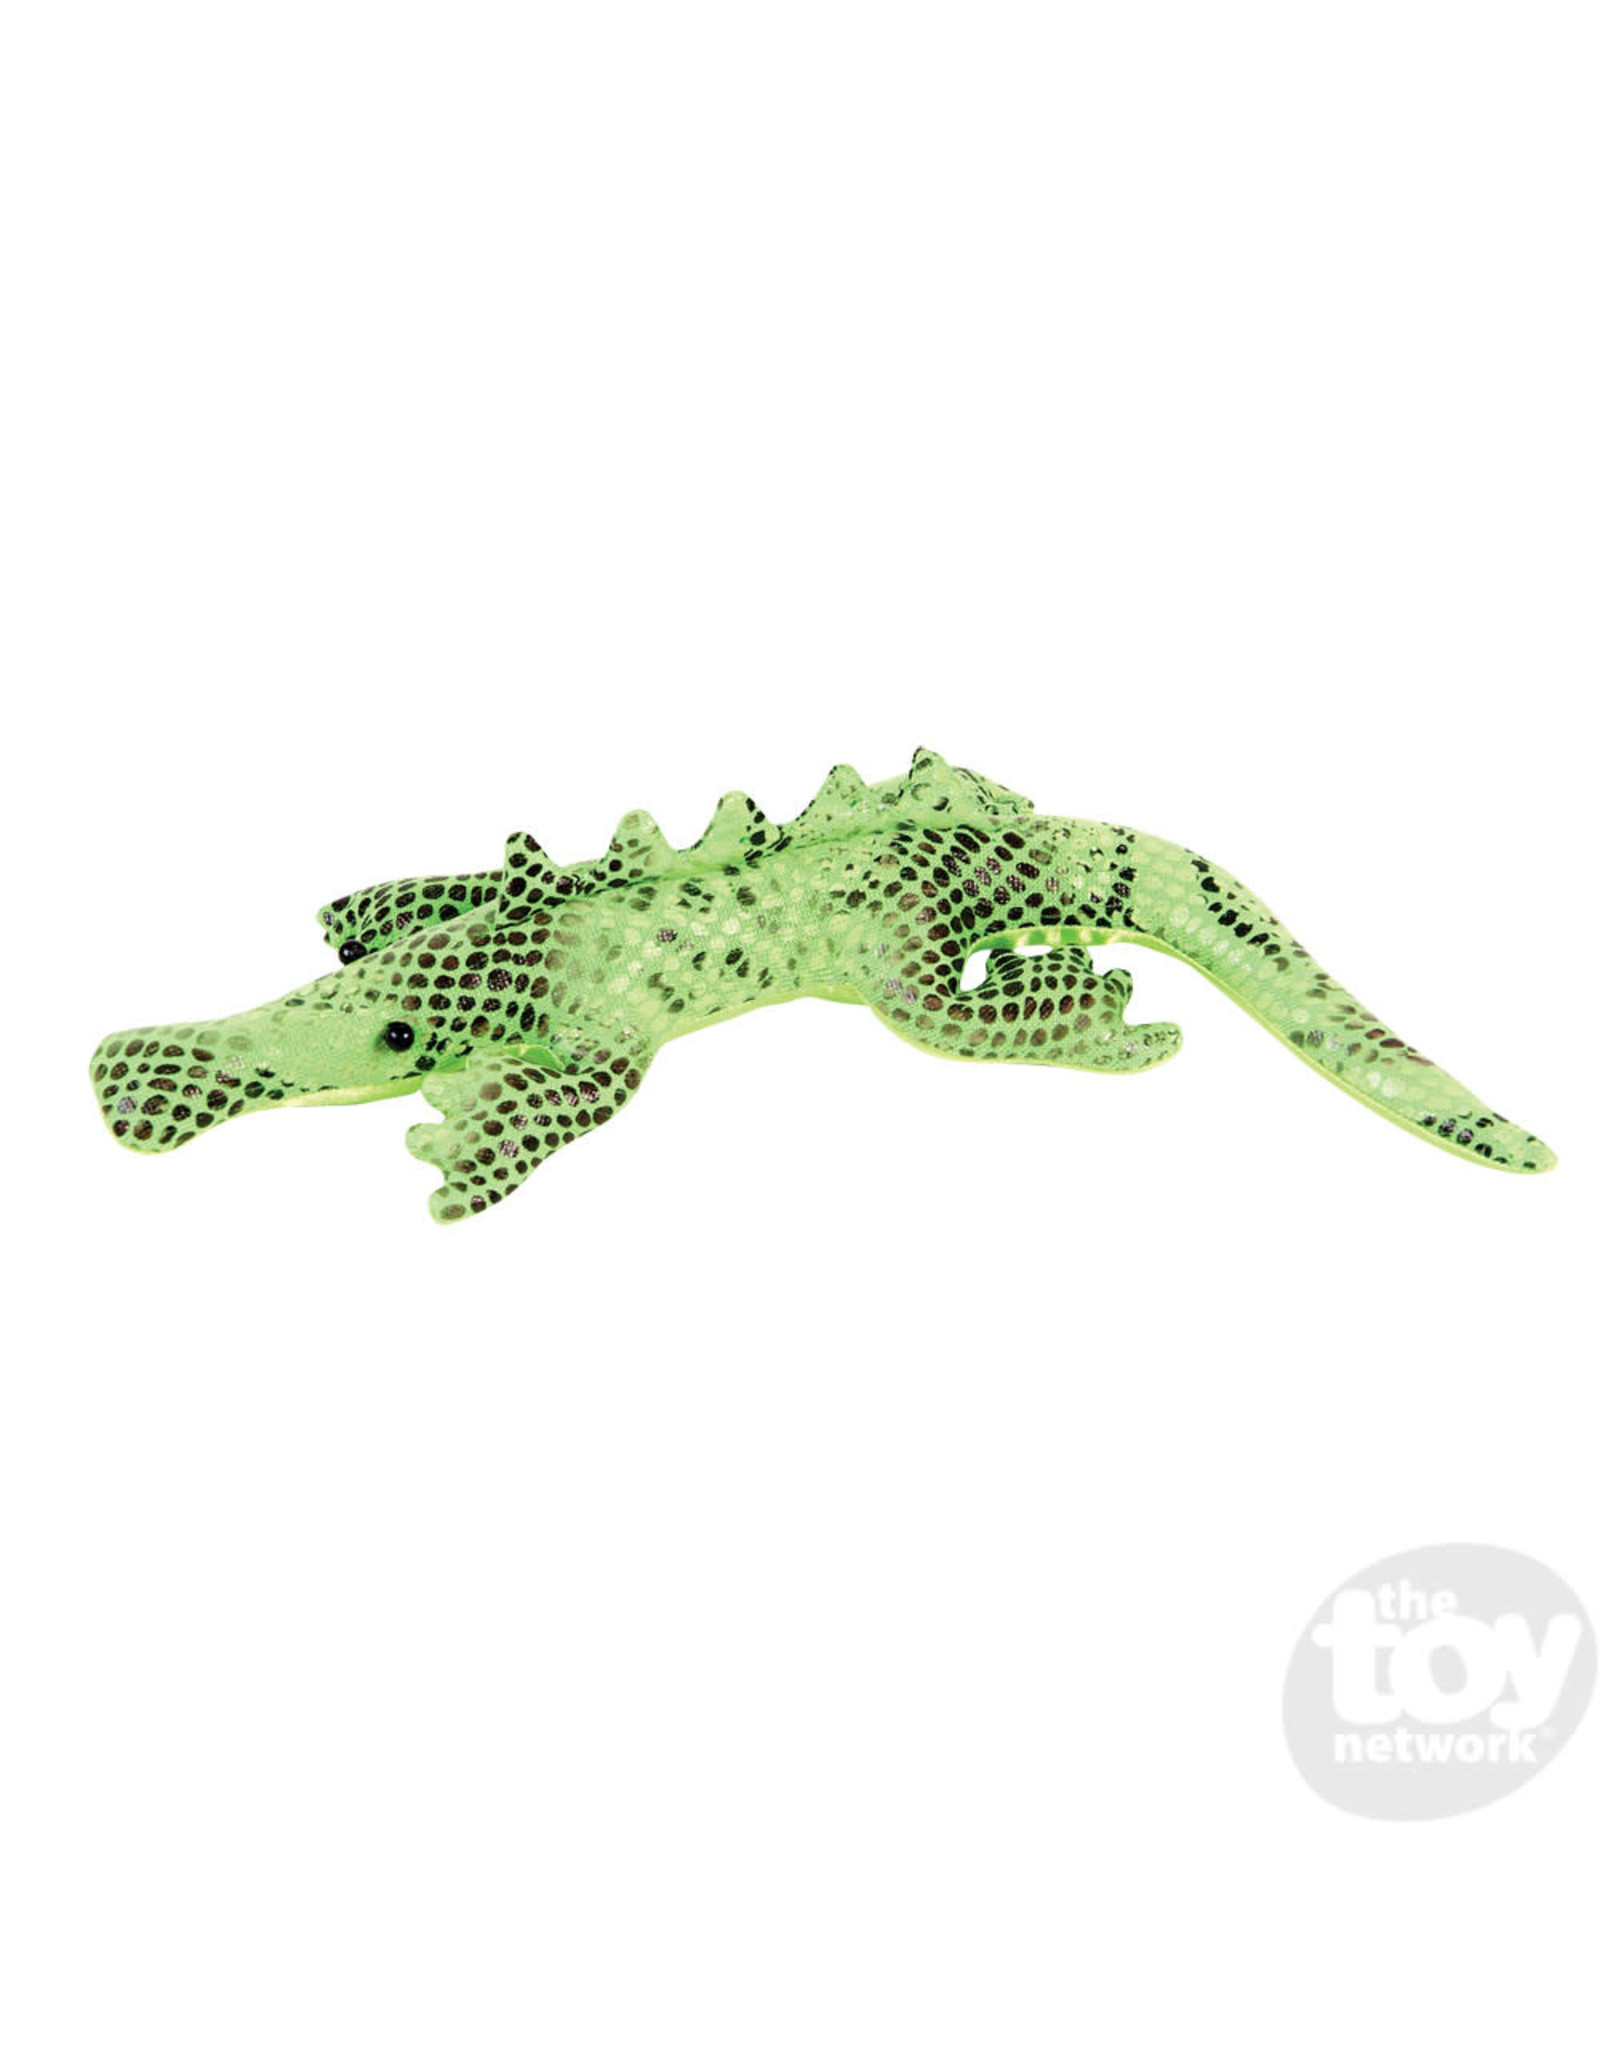 The Toy Network Alligator Sandbag 7""